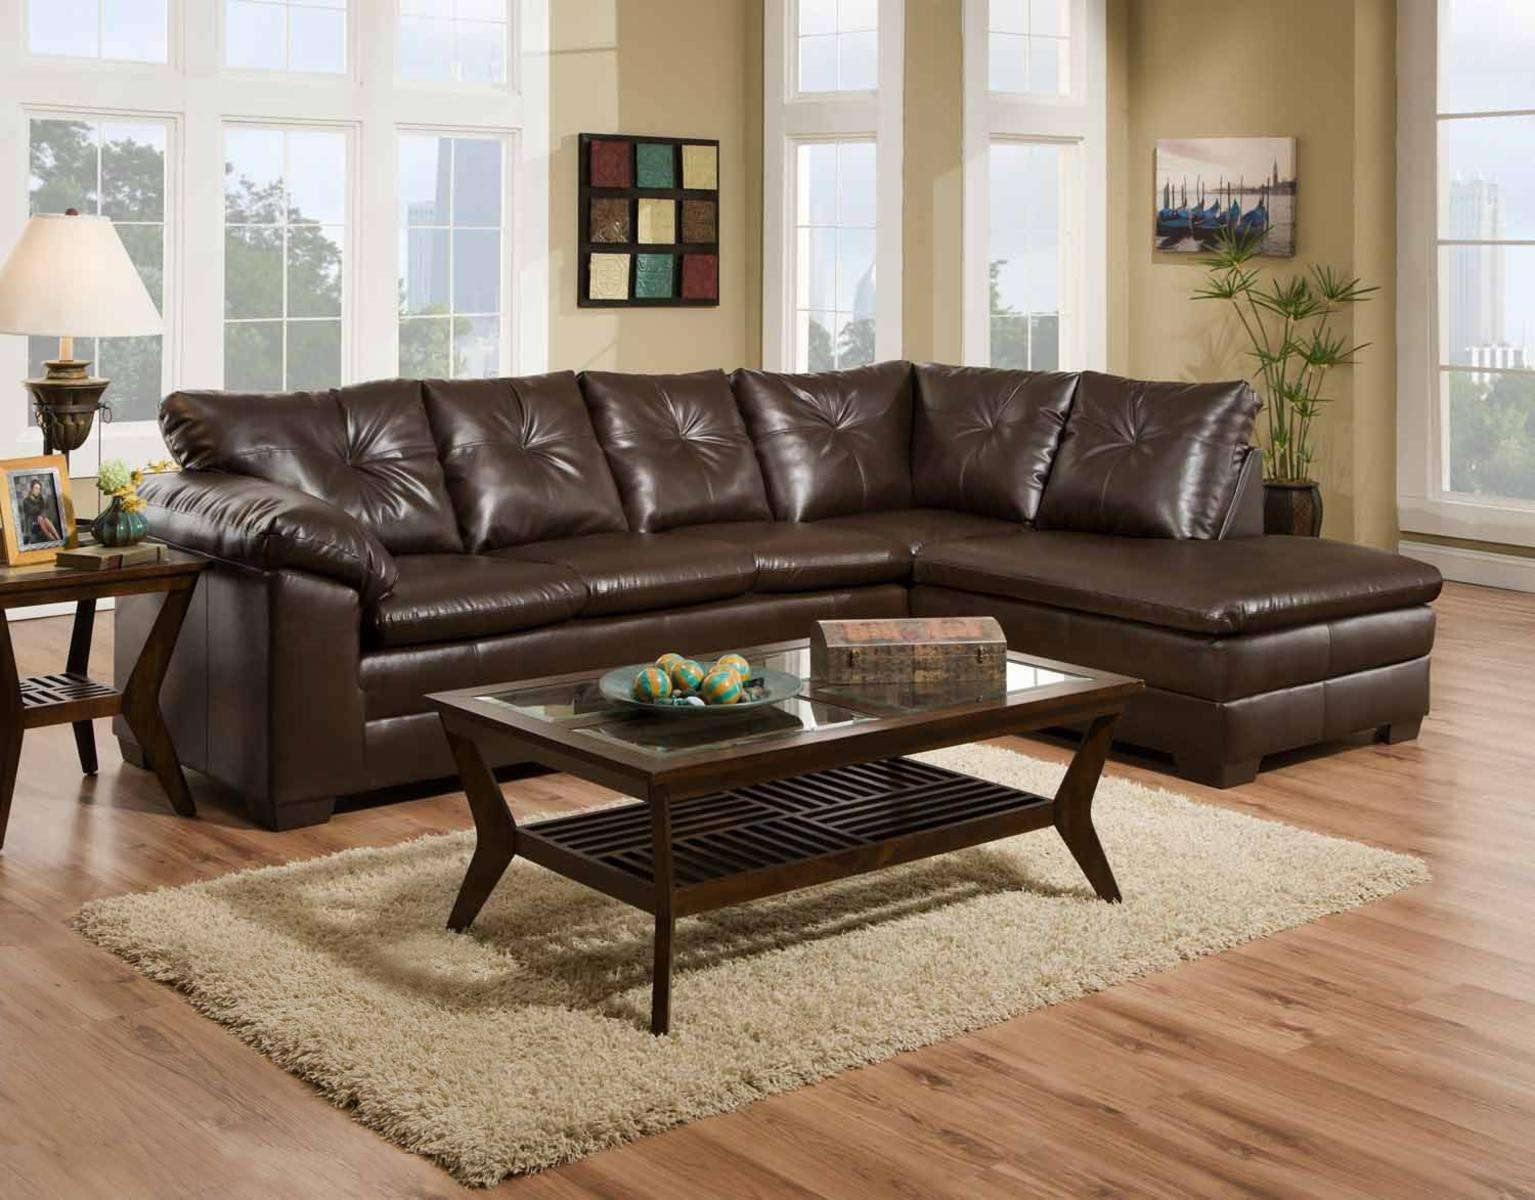 Rho Cowboy Brown 2-Piece Sectional